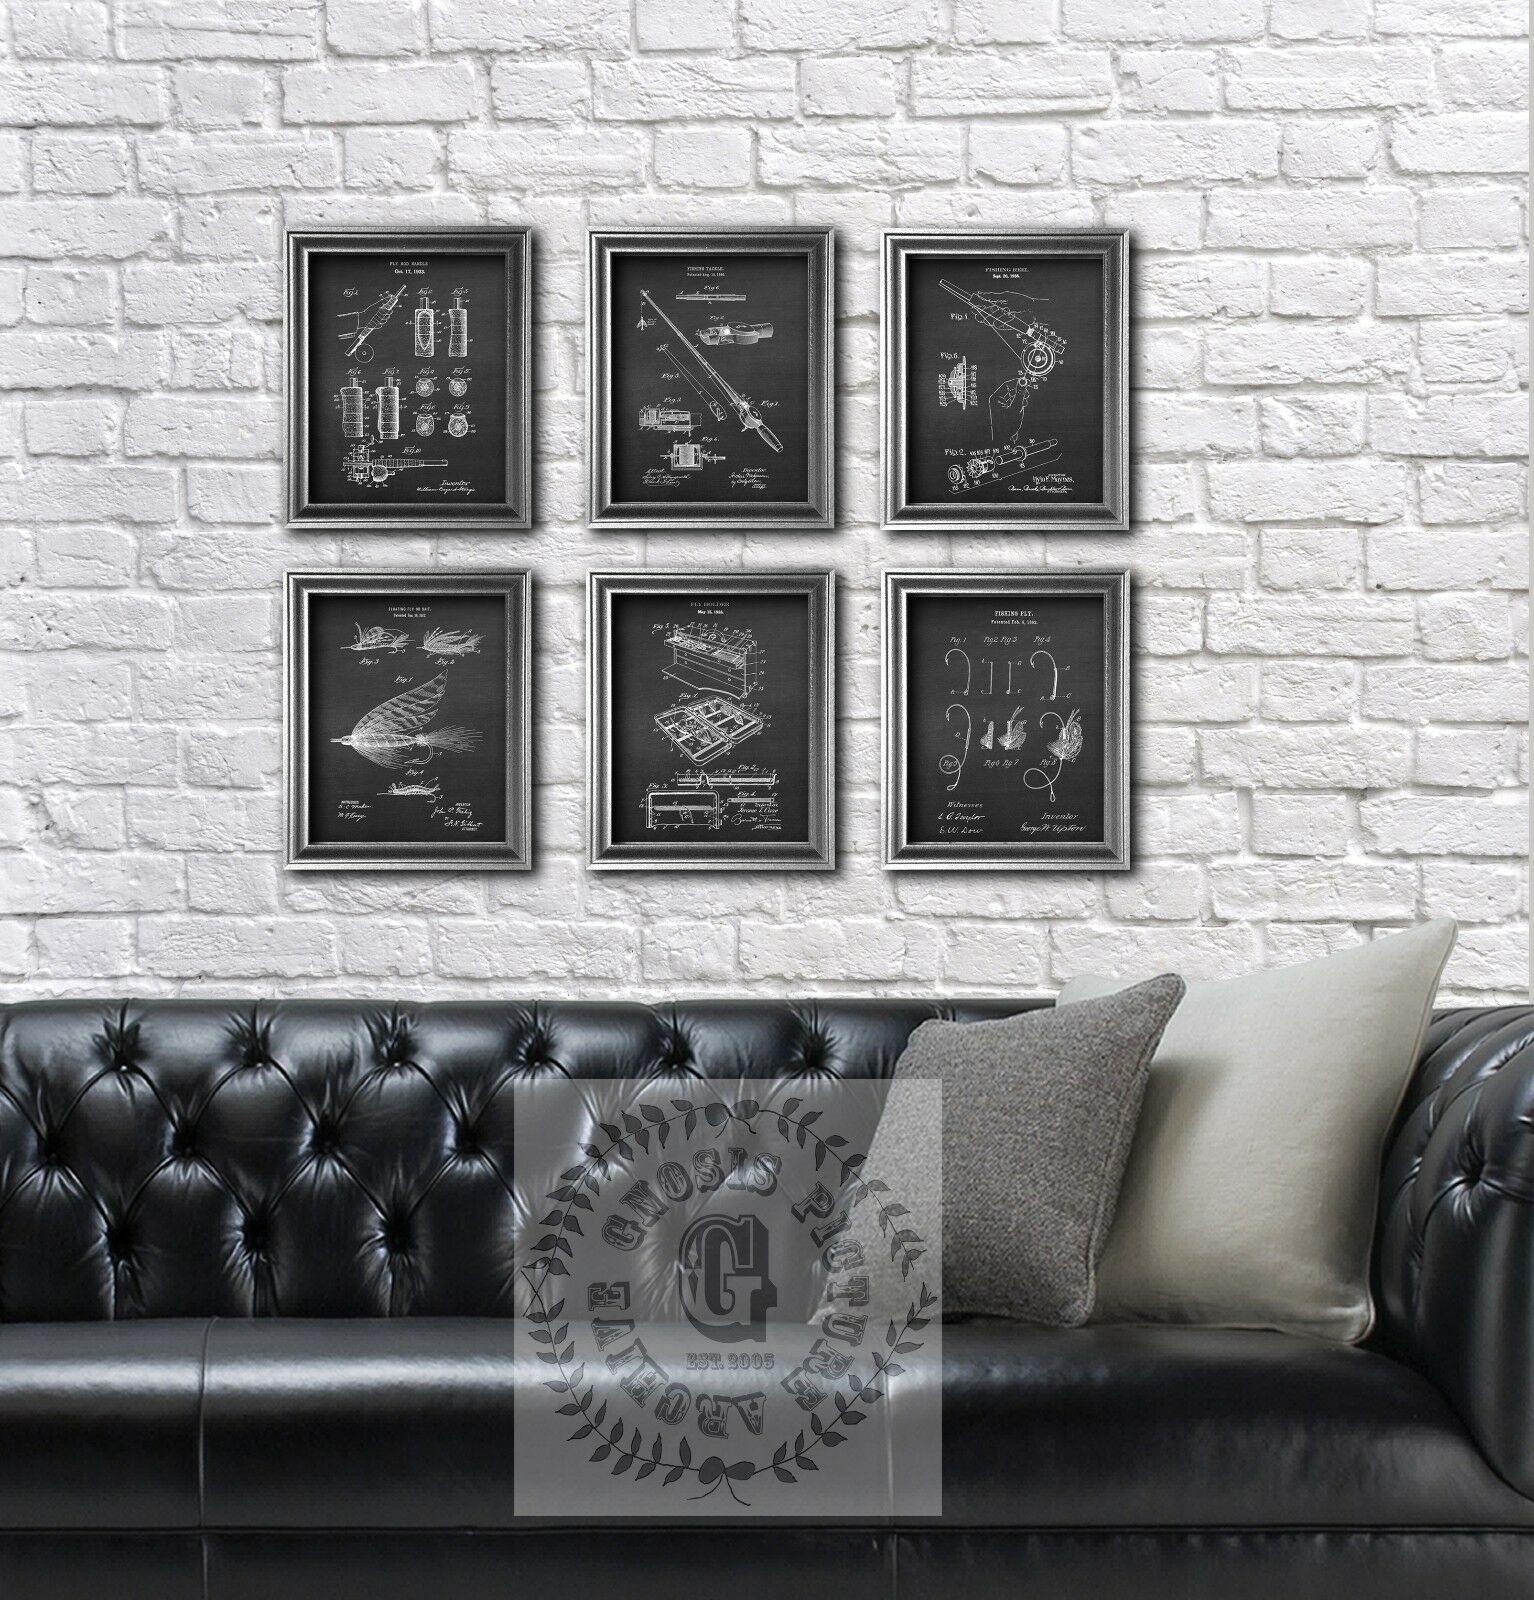 Fly fishing gear wall decor set of 6 unframed art prints Fishing Gift for him